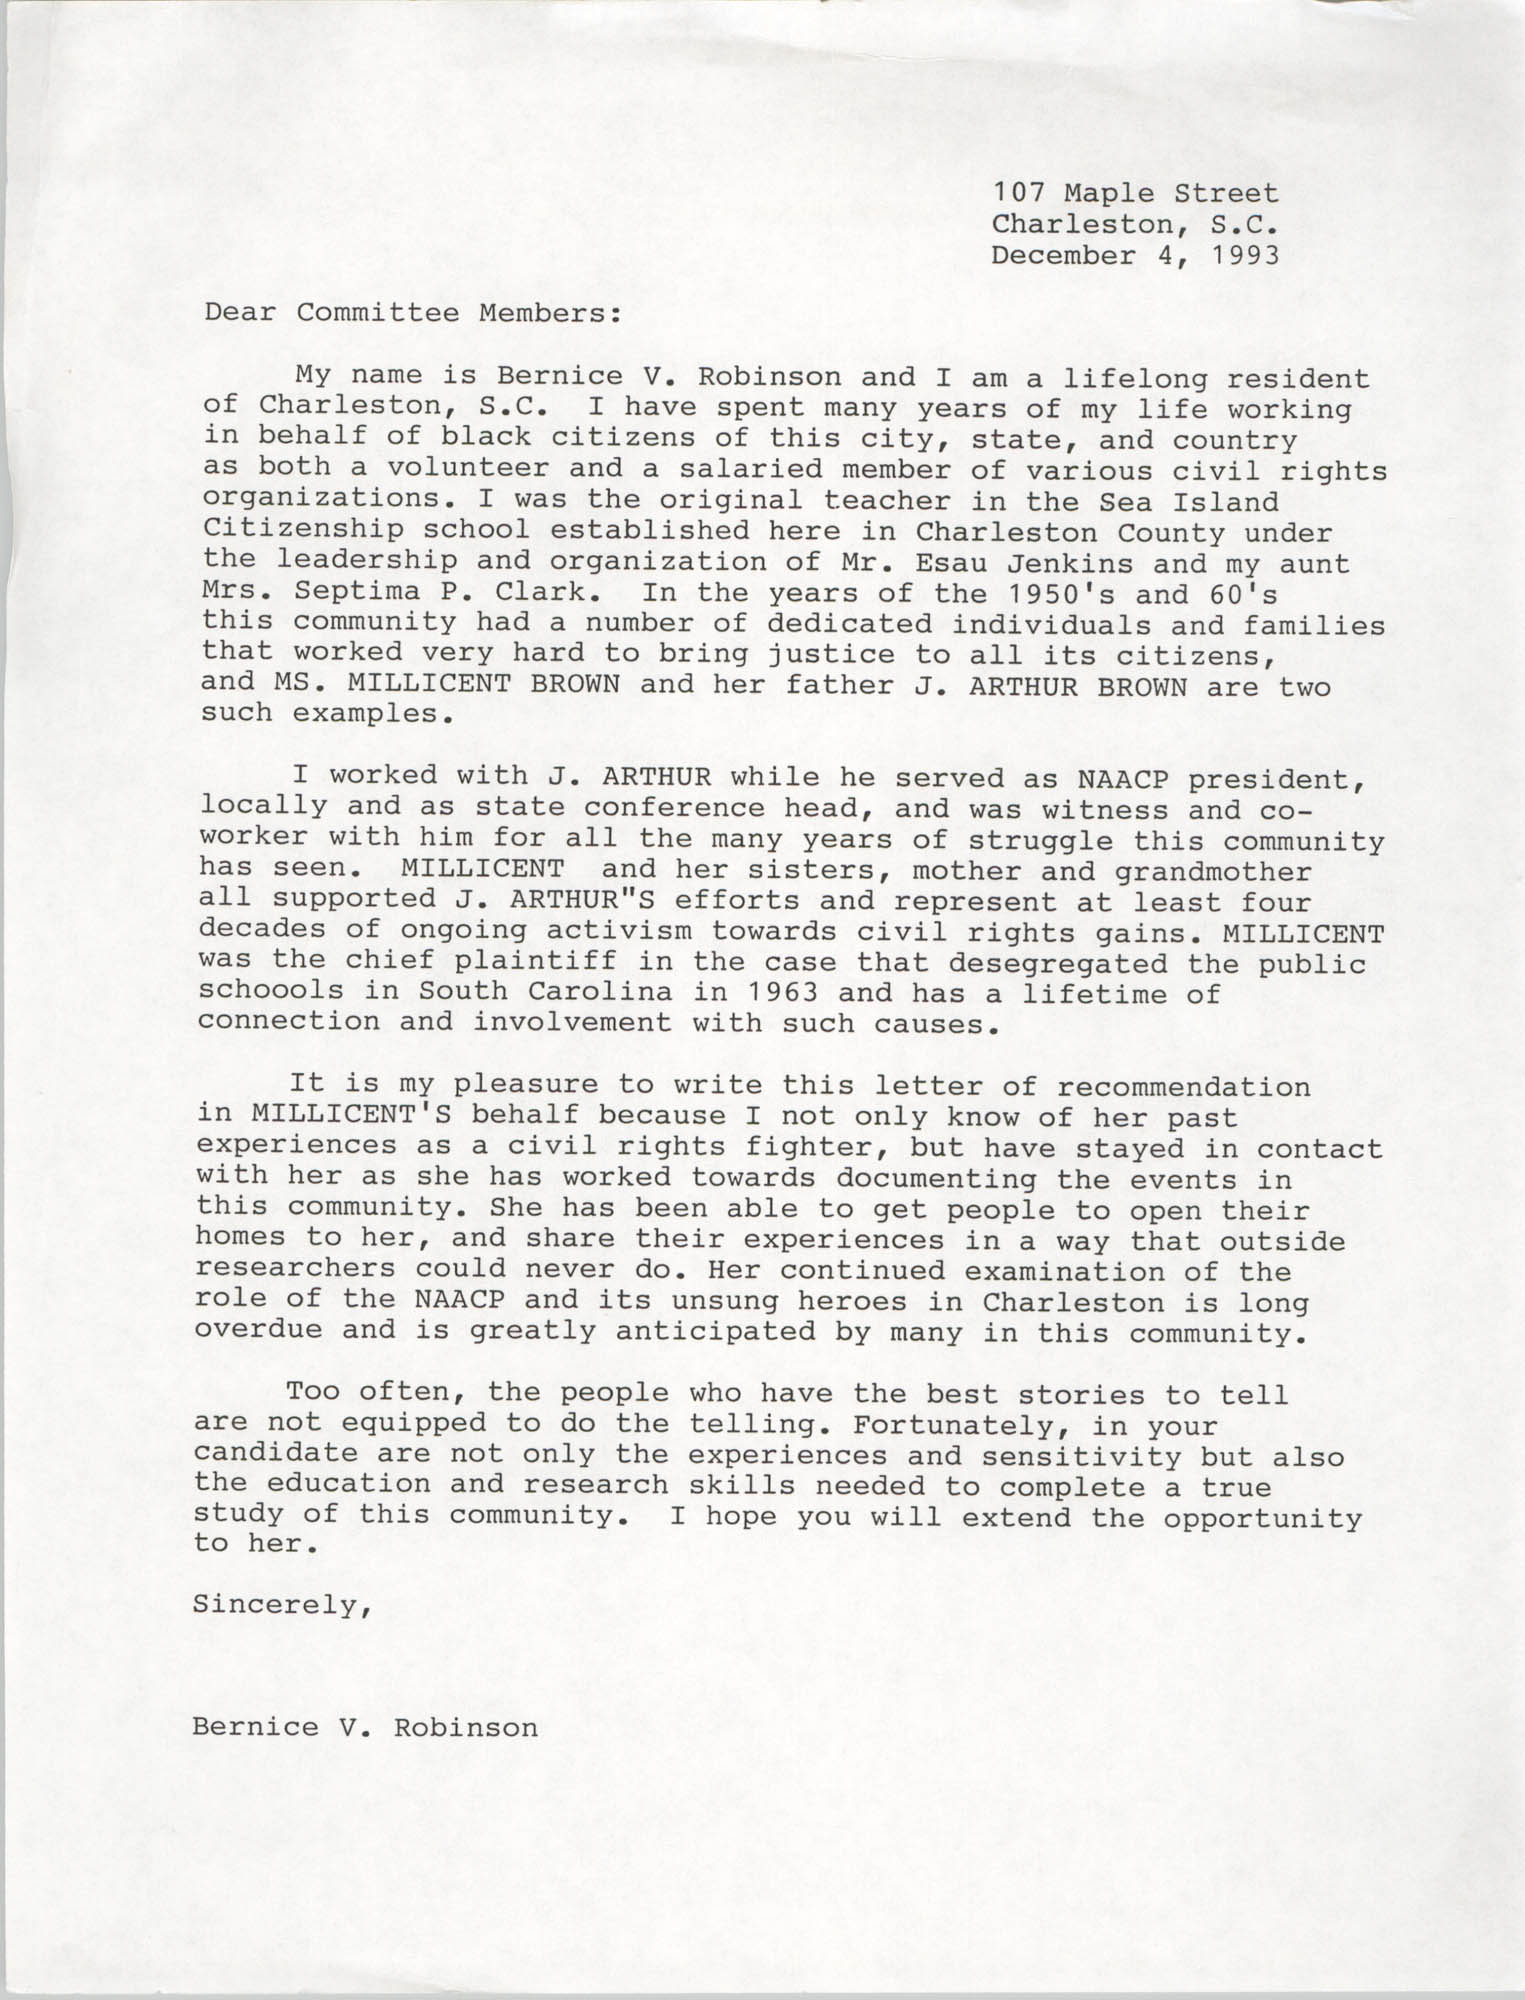 Letter from Bernice Robinson, December 4, 1993